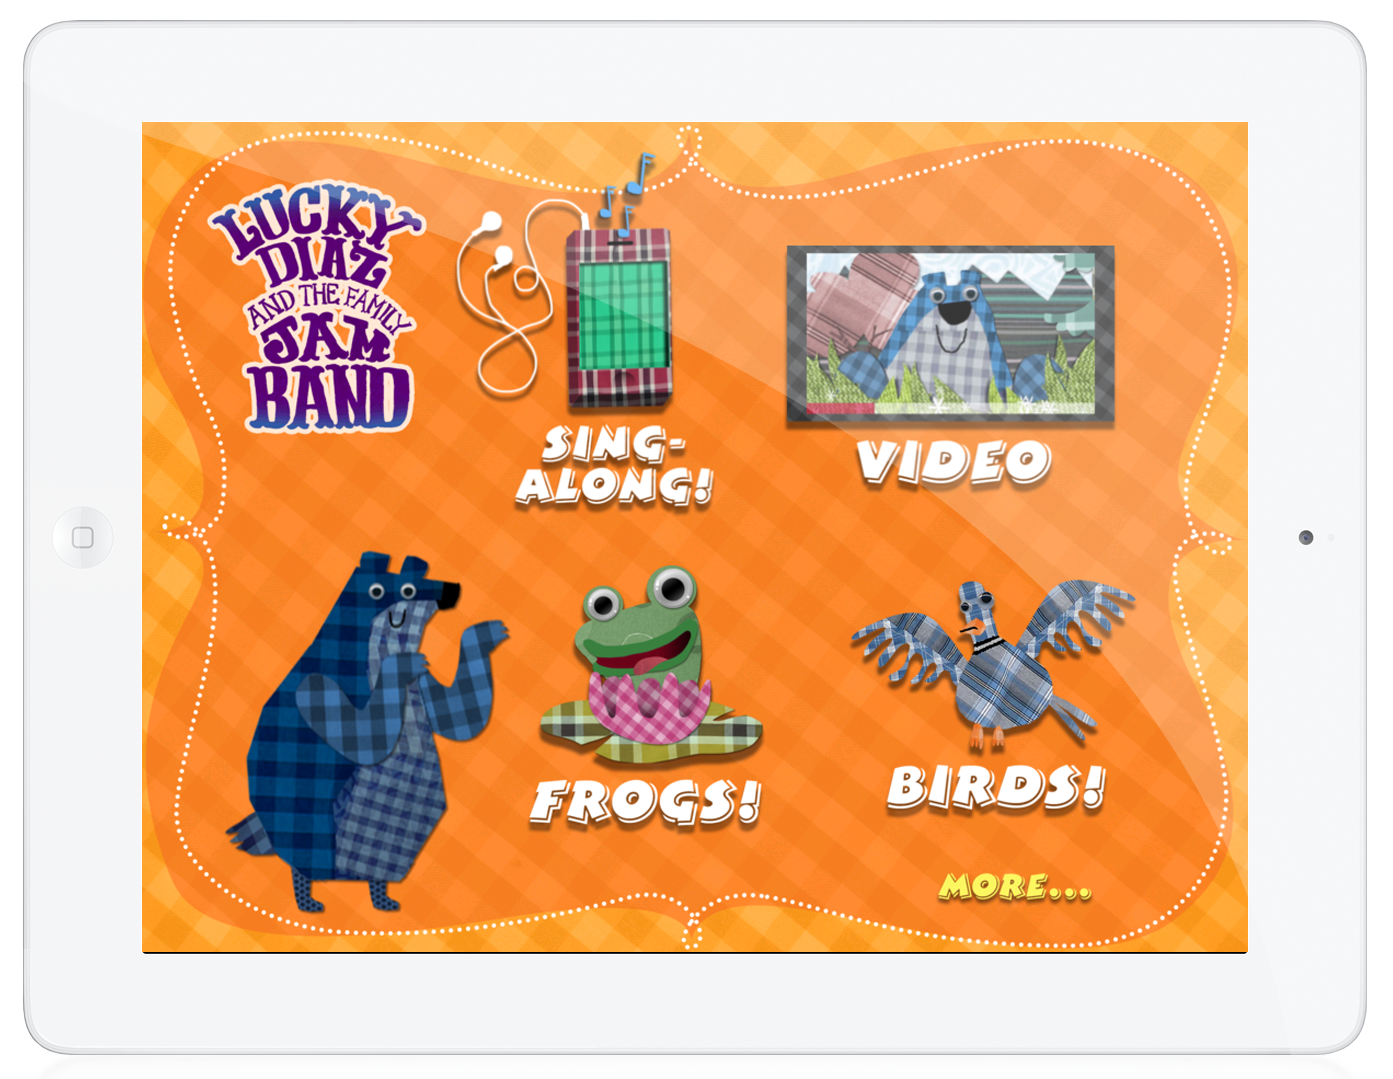 The hit song by Lucky Diaz and the Family Jam Band is now a hit iPad app for kids!   • Sing along to the song with onscreen lyrics!